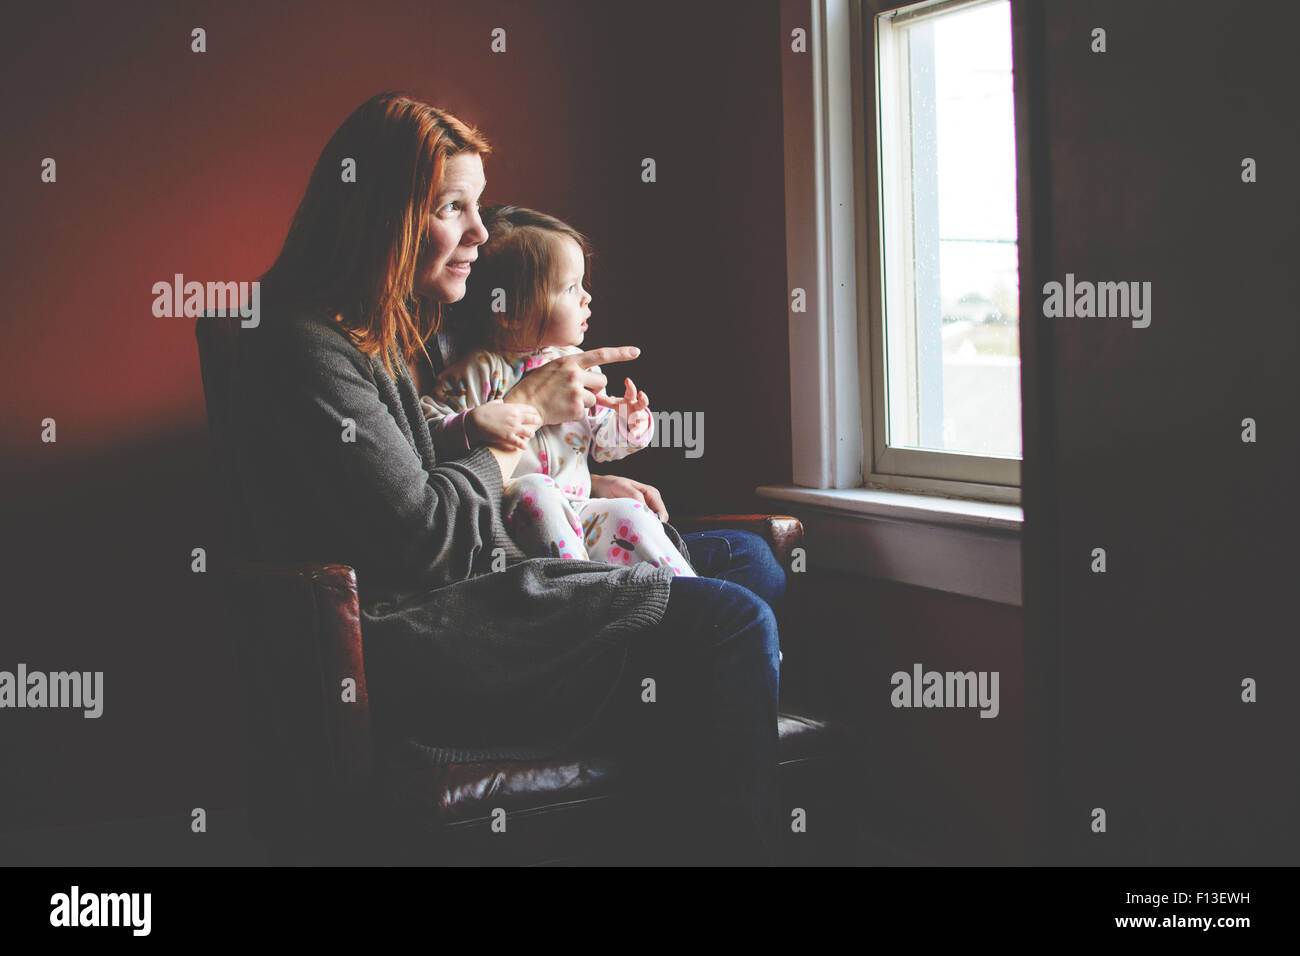 Baby girl sitting on her mother's lap, looking out the window - Stock Image